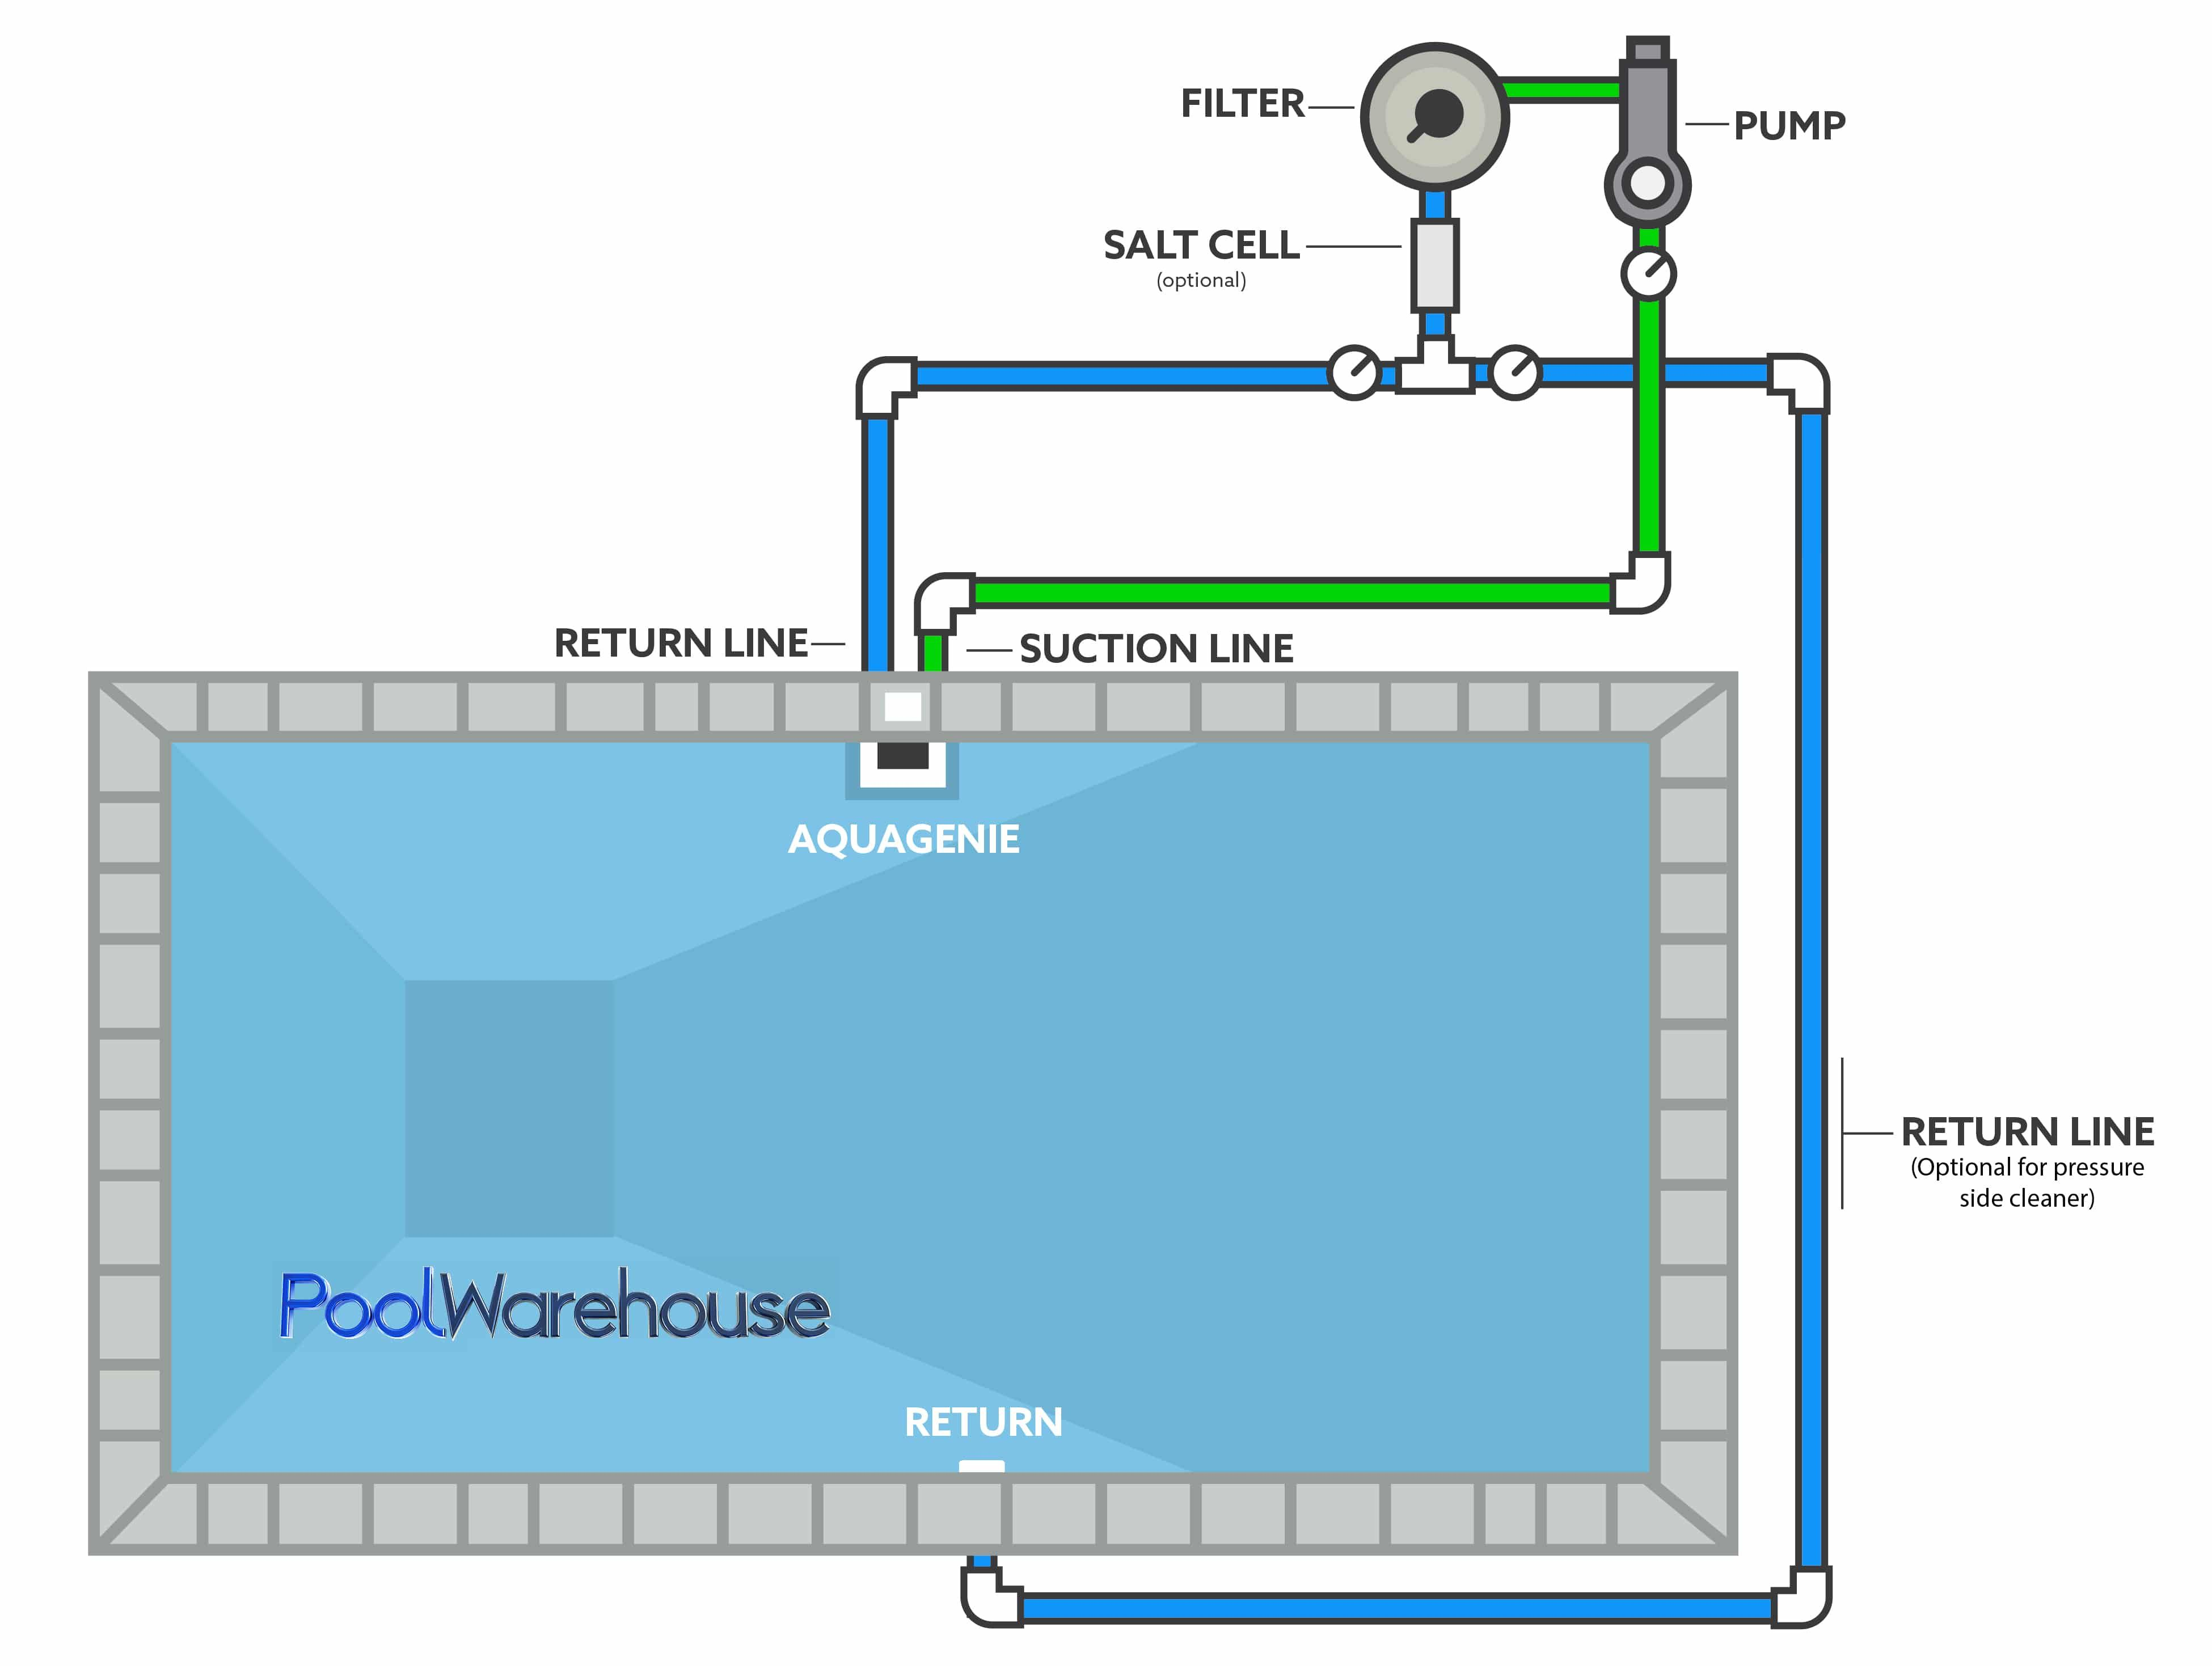 Swimming Pool Plumbing Diagrams Inground Pool Kit Plumbing Layouts Pool Plumbing Swimming Pool Plumbing Diy Swimming Pool